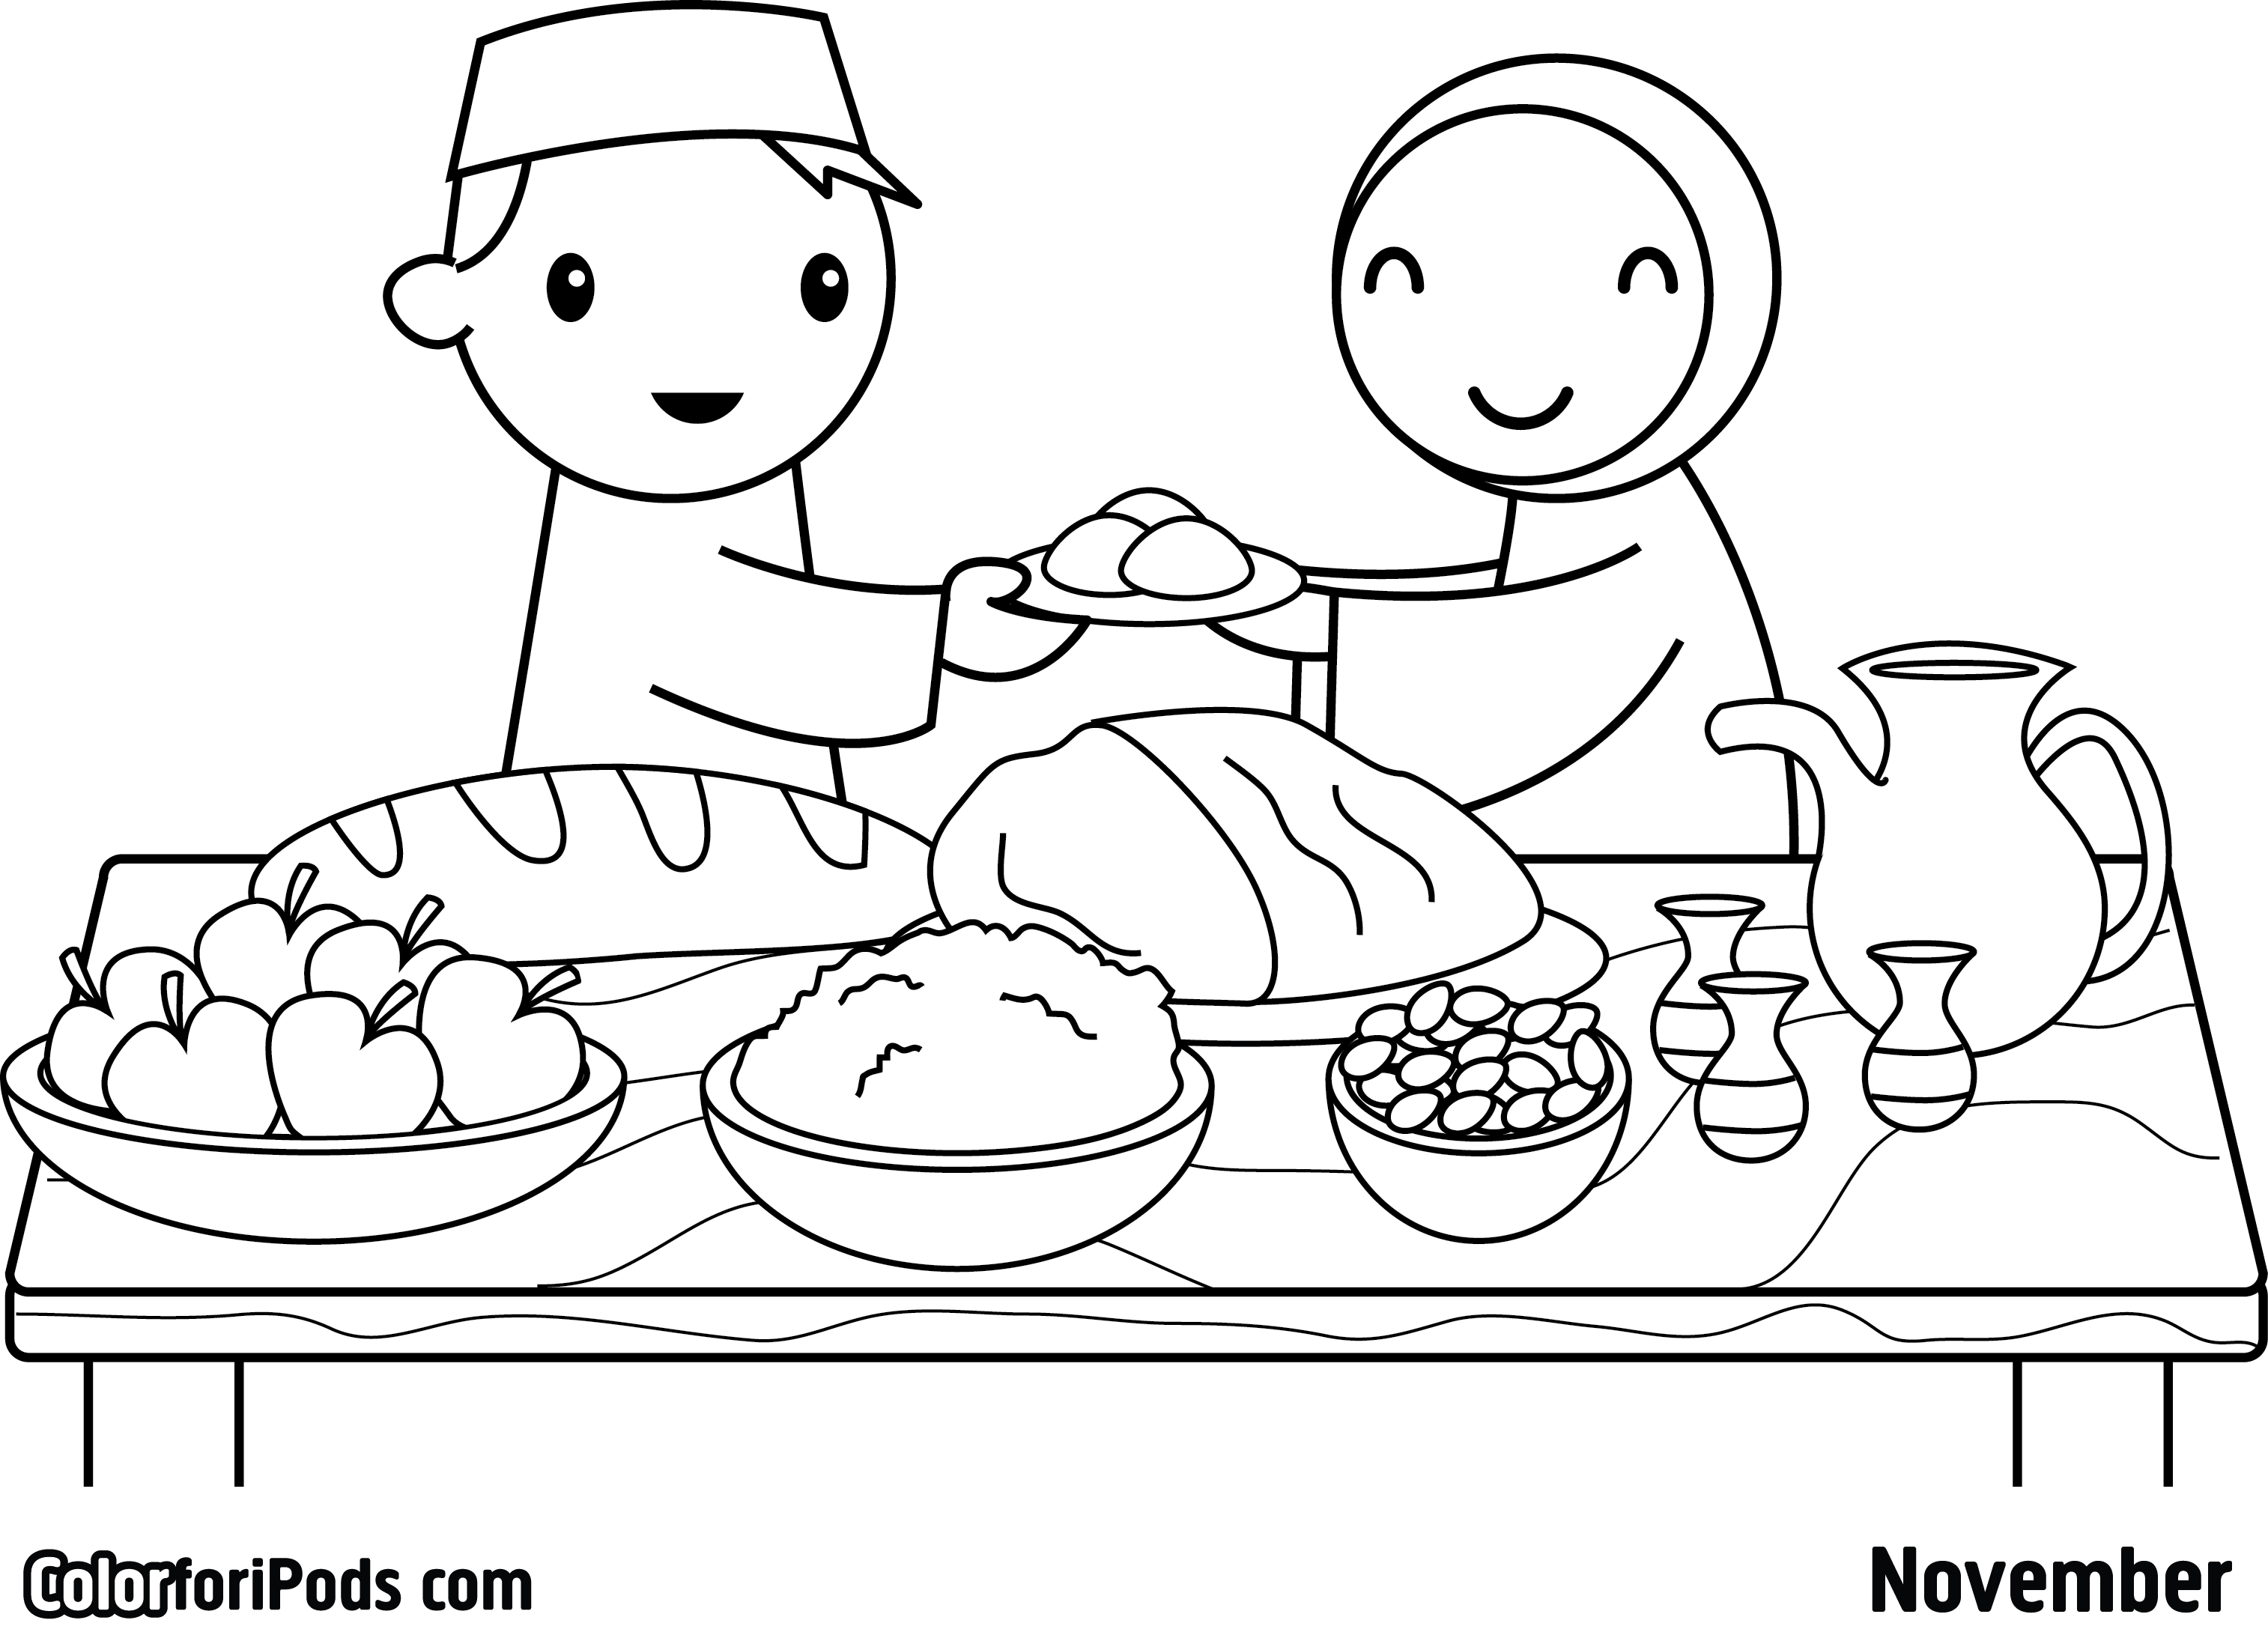 Best Website For Free Coloring Pages : Ramadan coloring pages to download and print for free